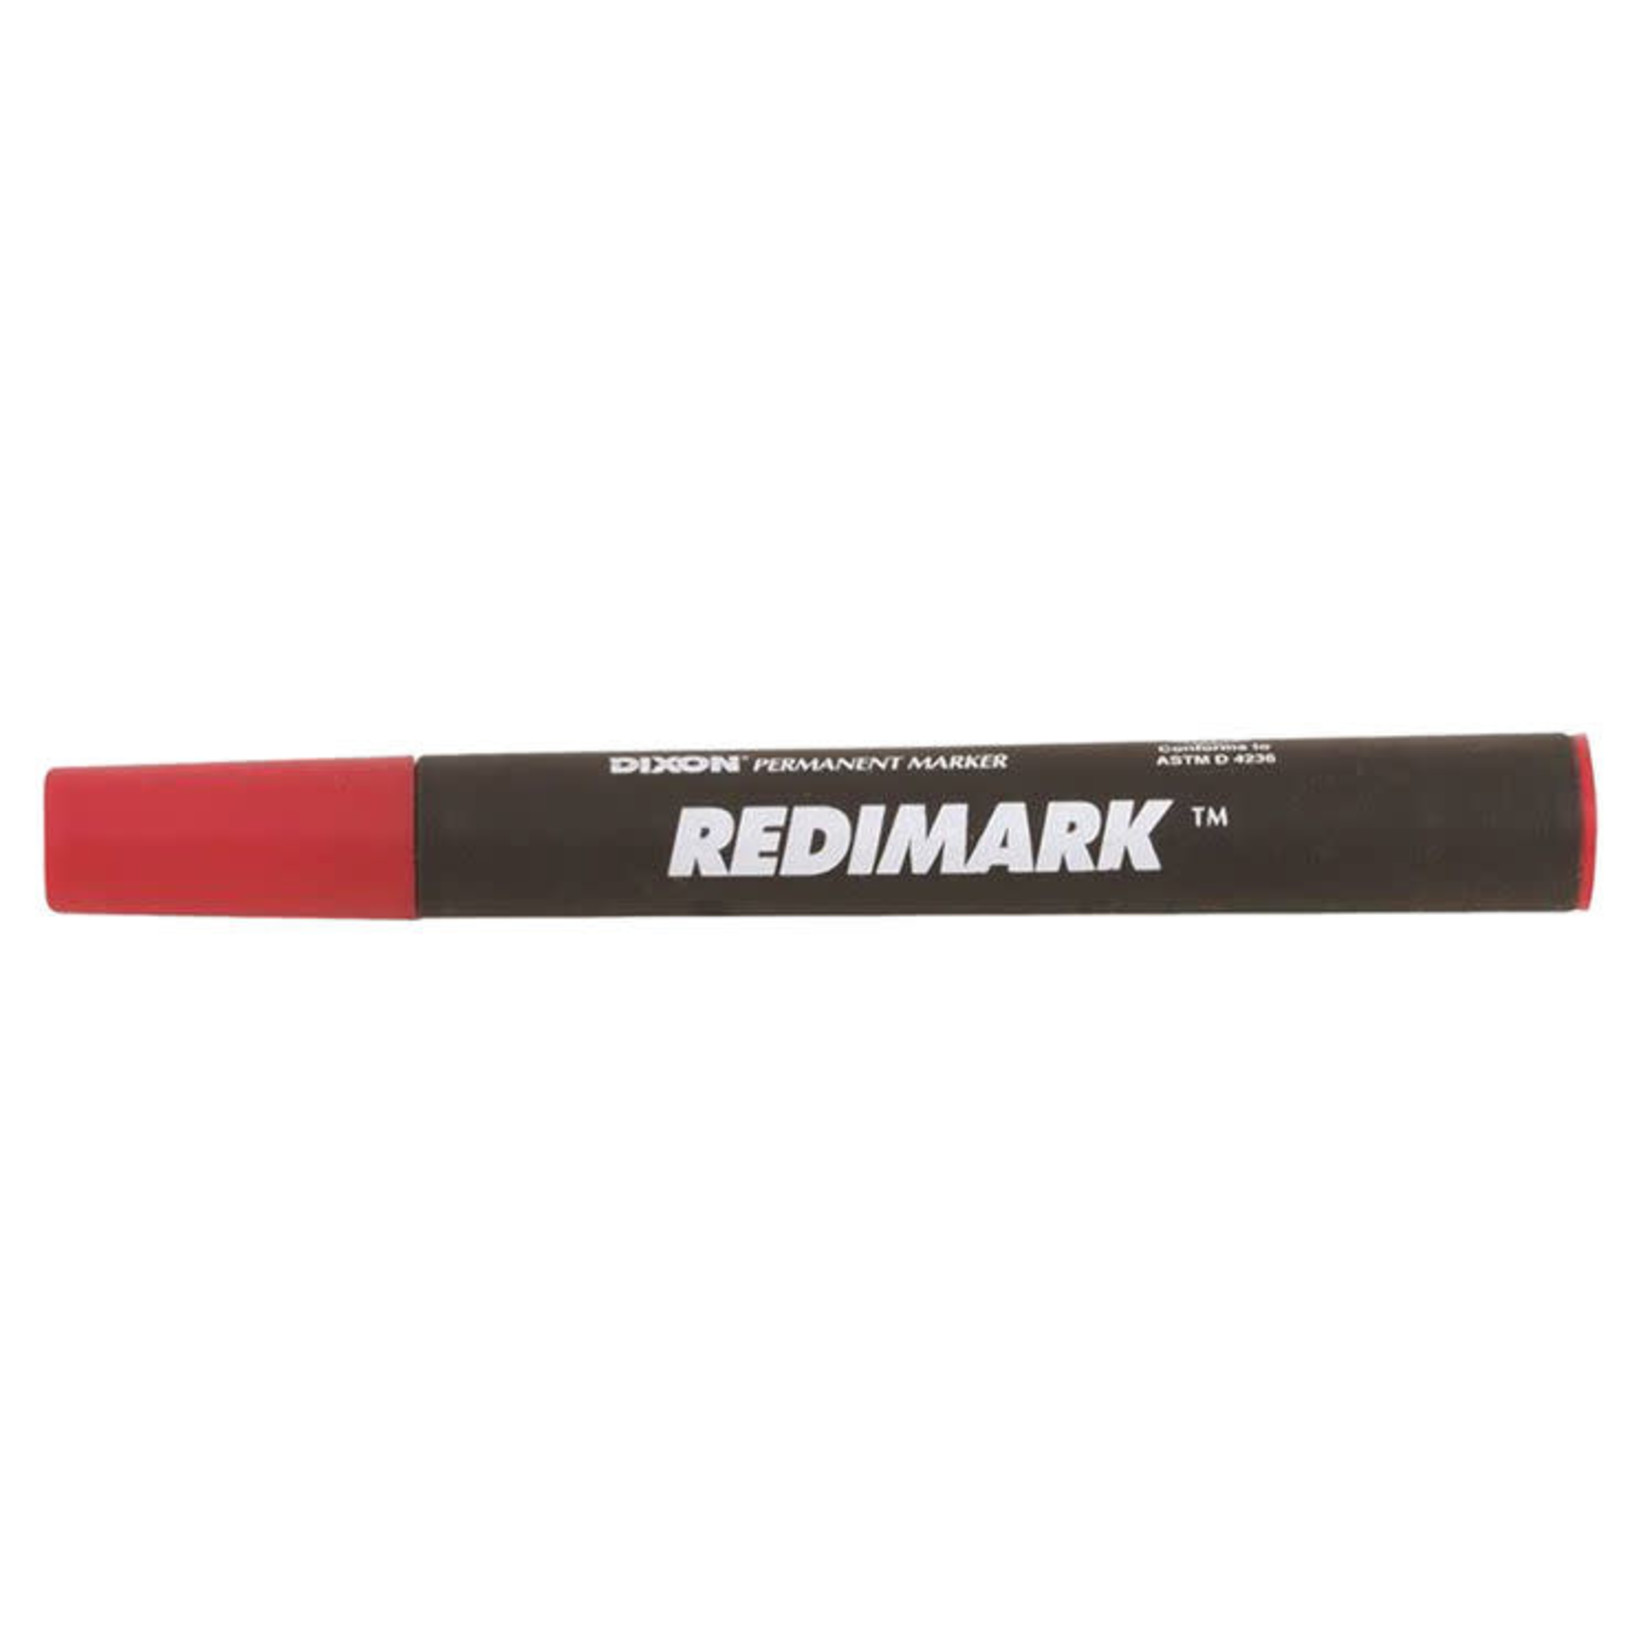 Dixon RediMark Permanent markers Chisel point Metal body Box of 12 markers Red